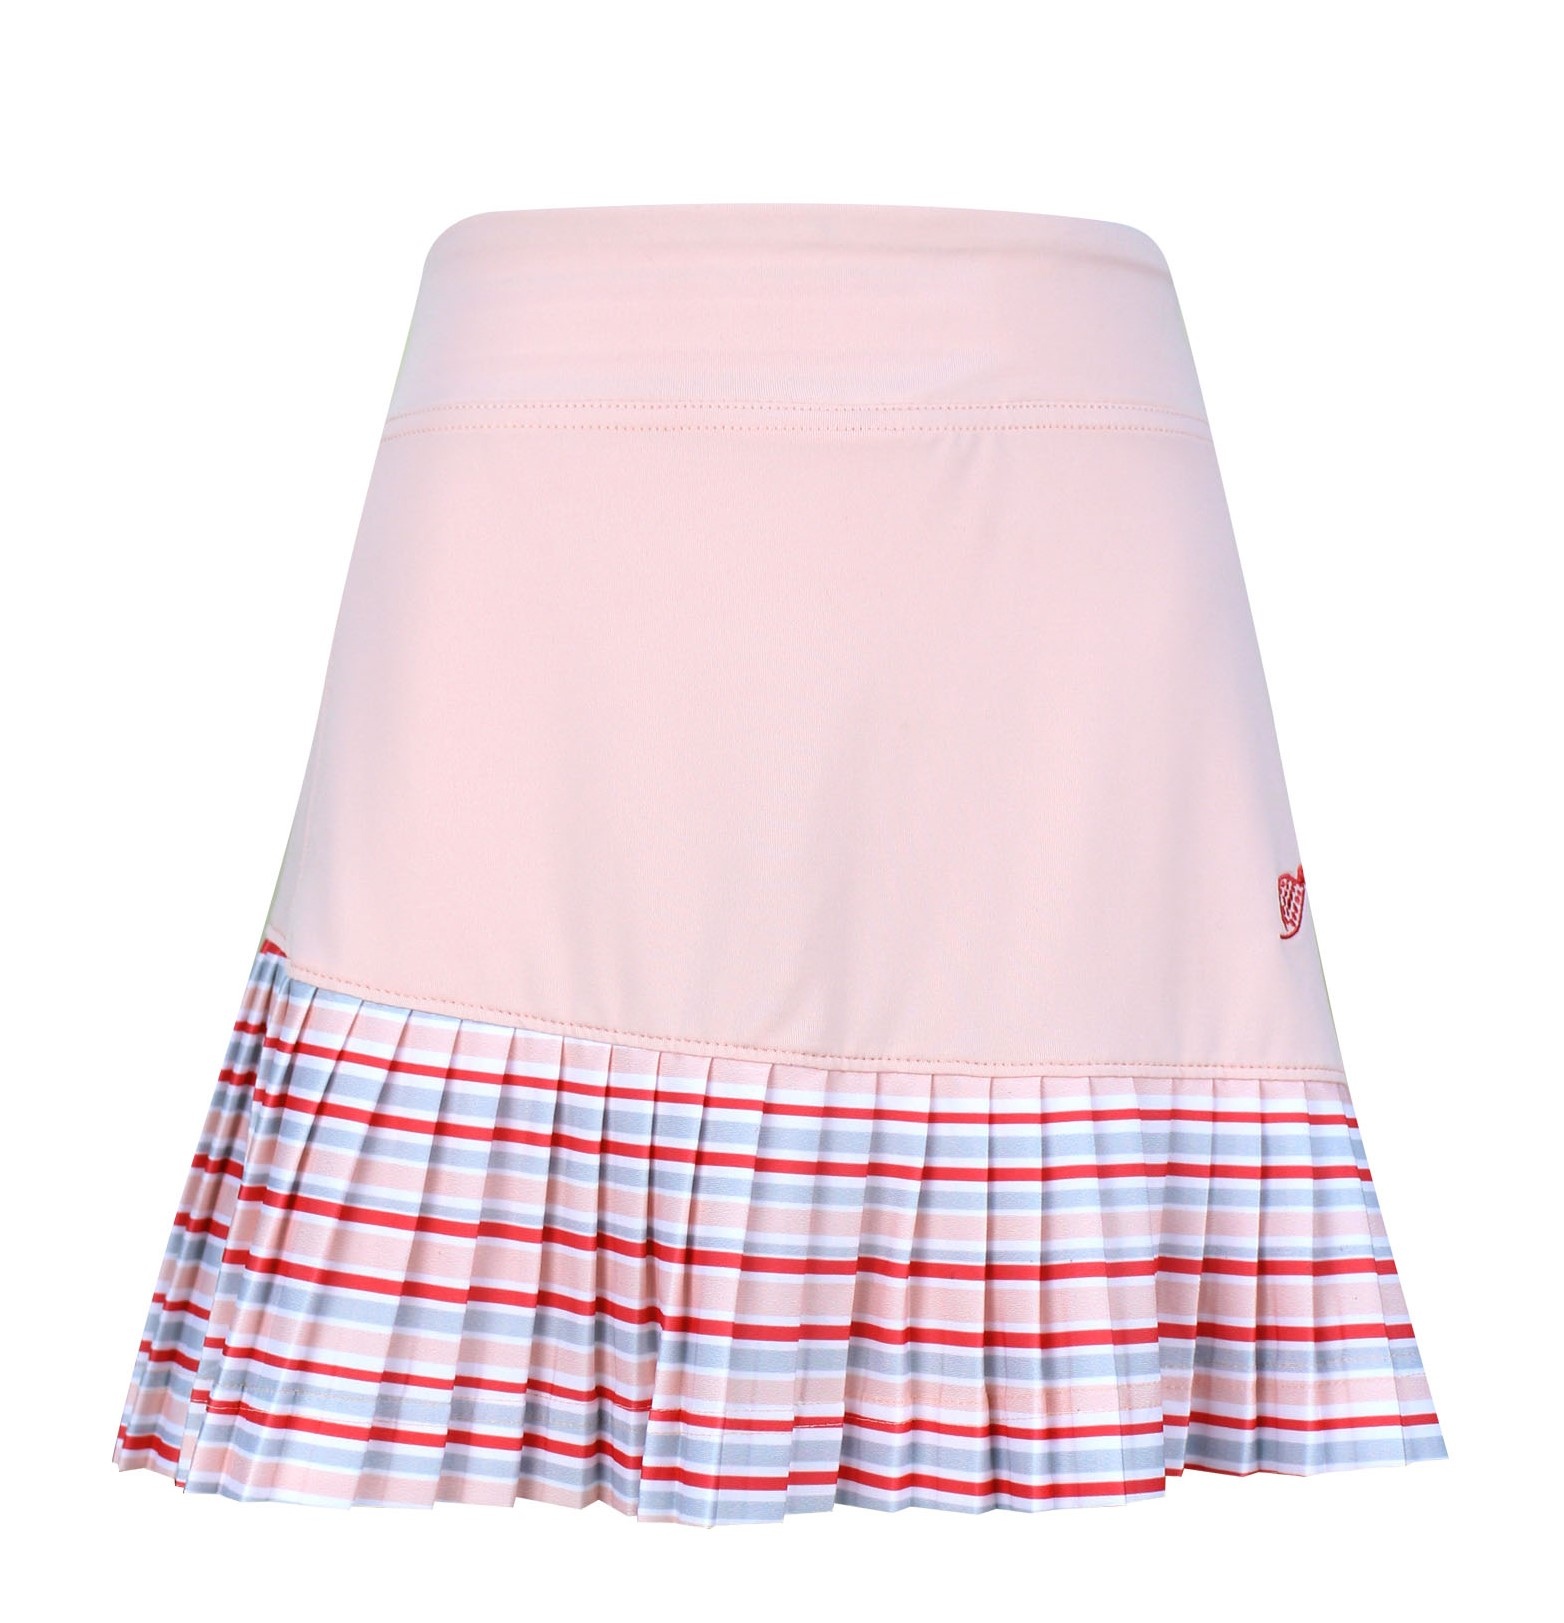 Charlee Accordion Pleat Girl's Golf & Tennis  Skort in Pale Pink Print